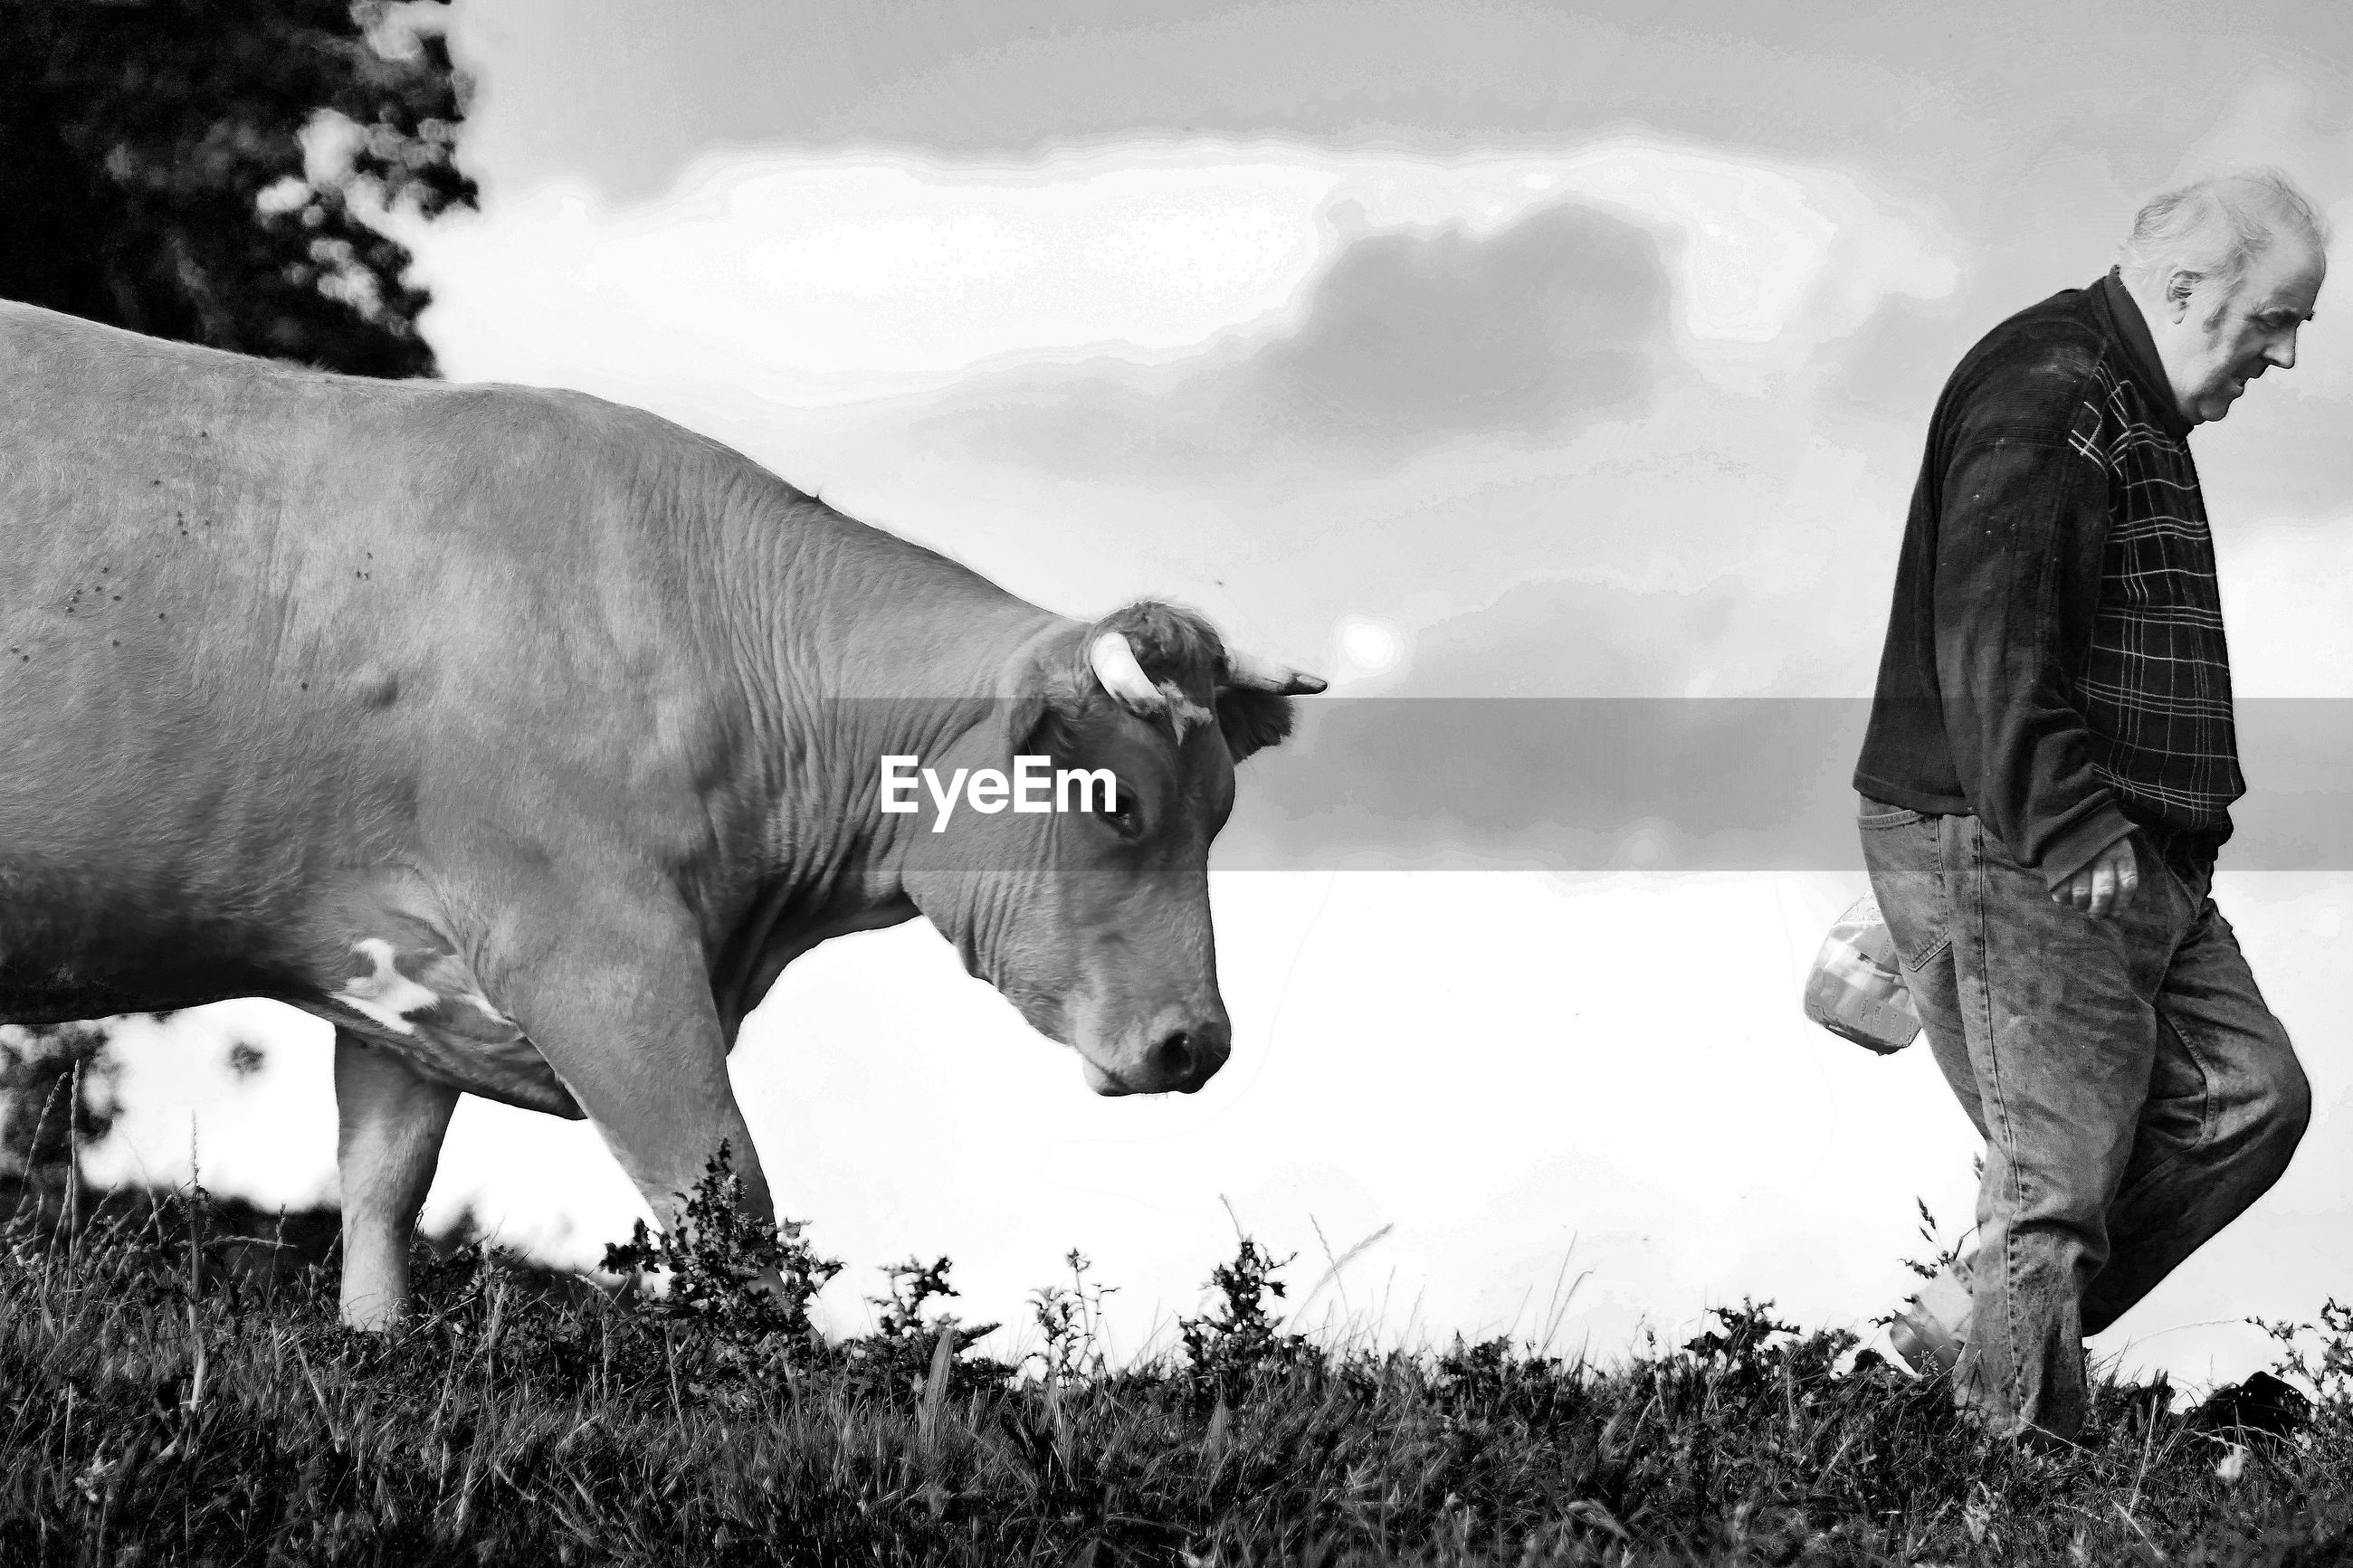 Man with cow walking on field against sky